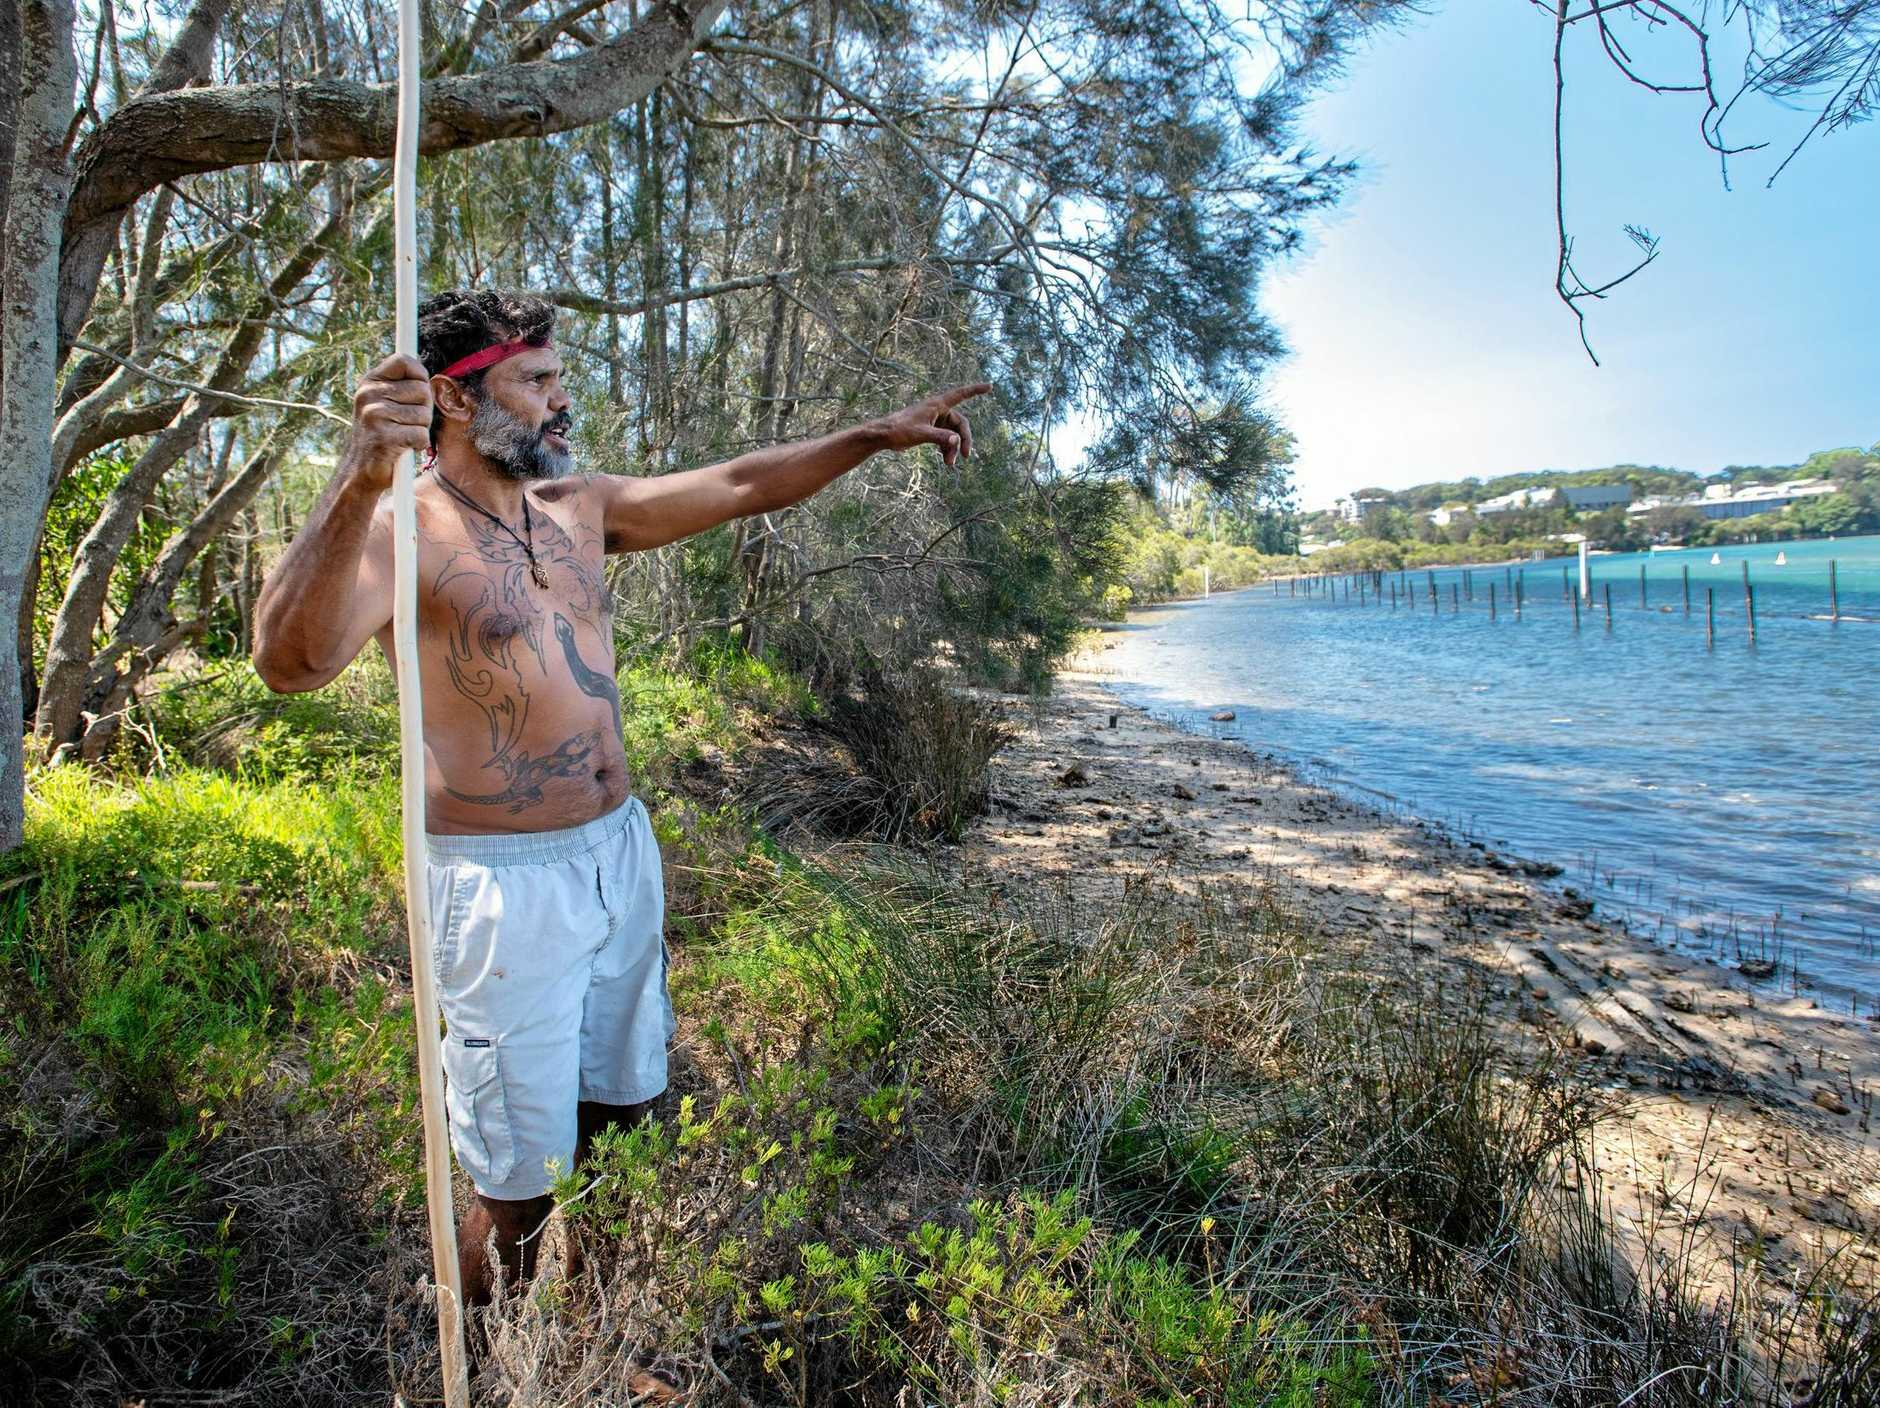 MAN OF THE LAND: Buagin looks out over the Nambucca River at the site of the Gumbaynggirr Tent Embassy.